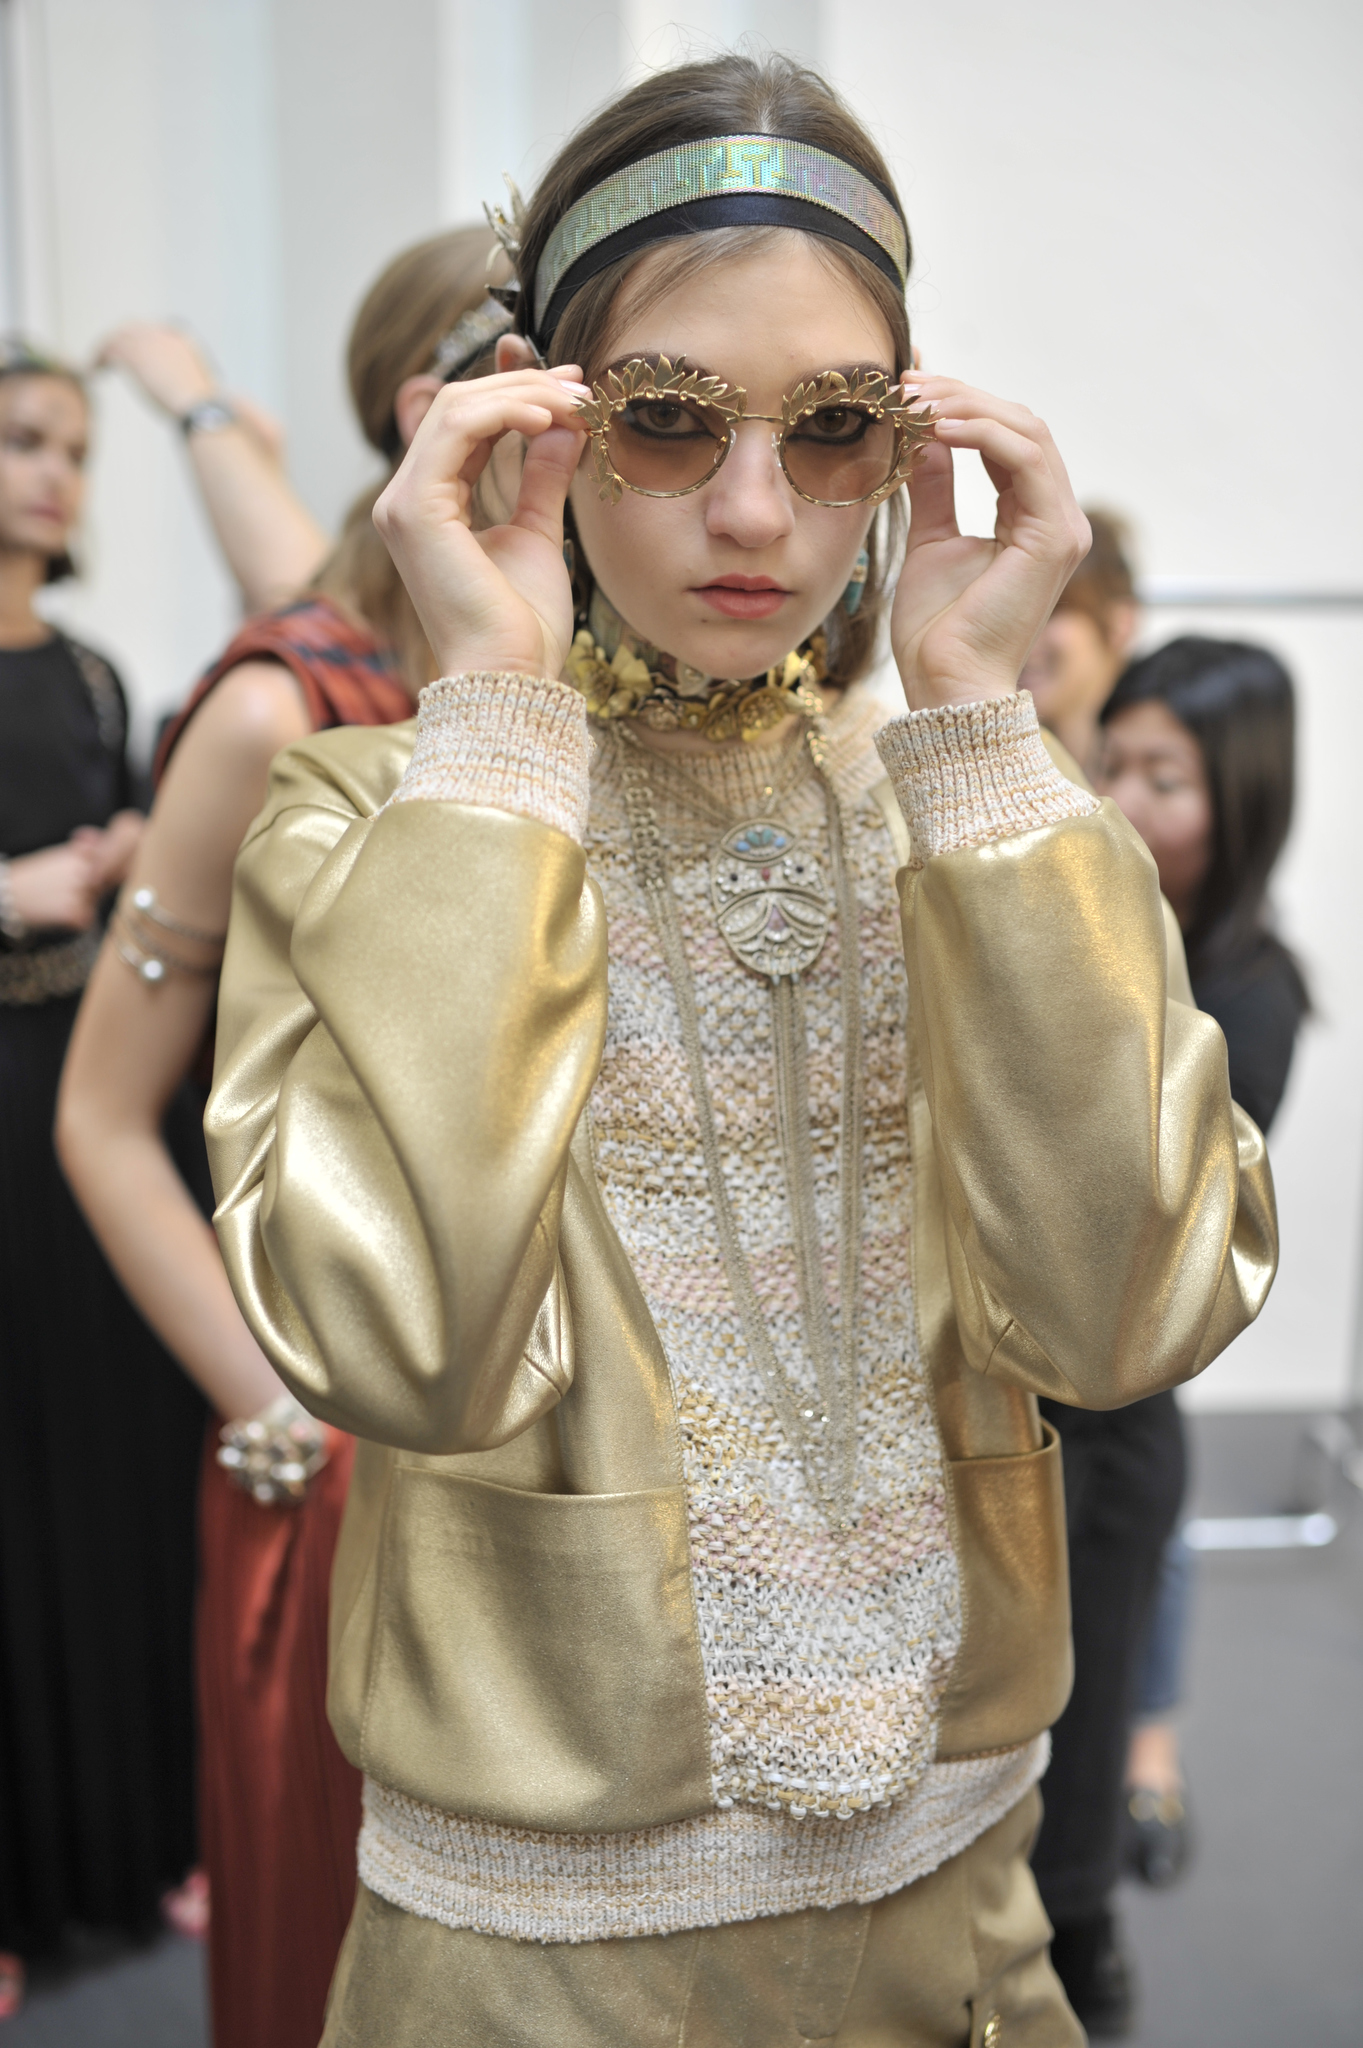 Backstage at Chanel Cruise 2018 Show